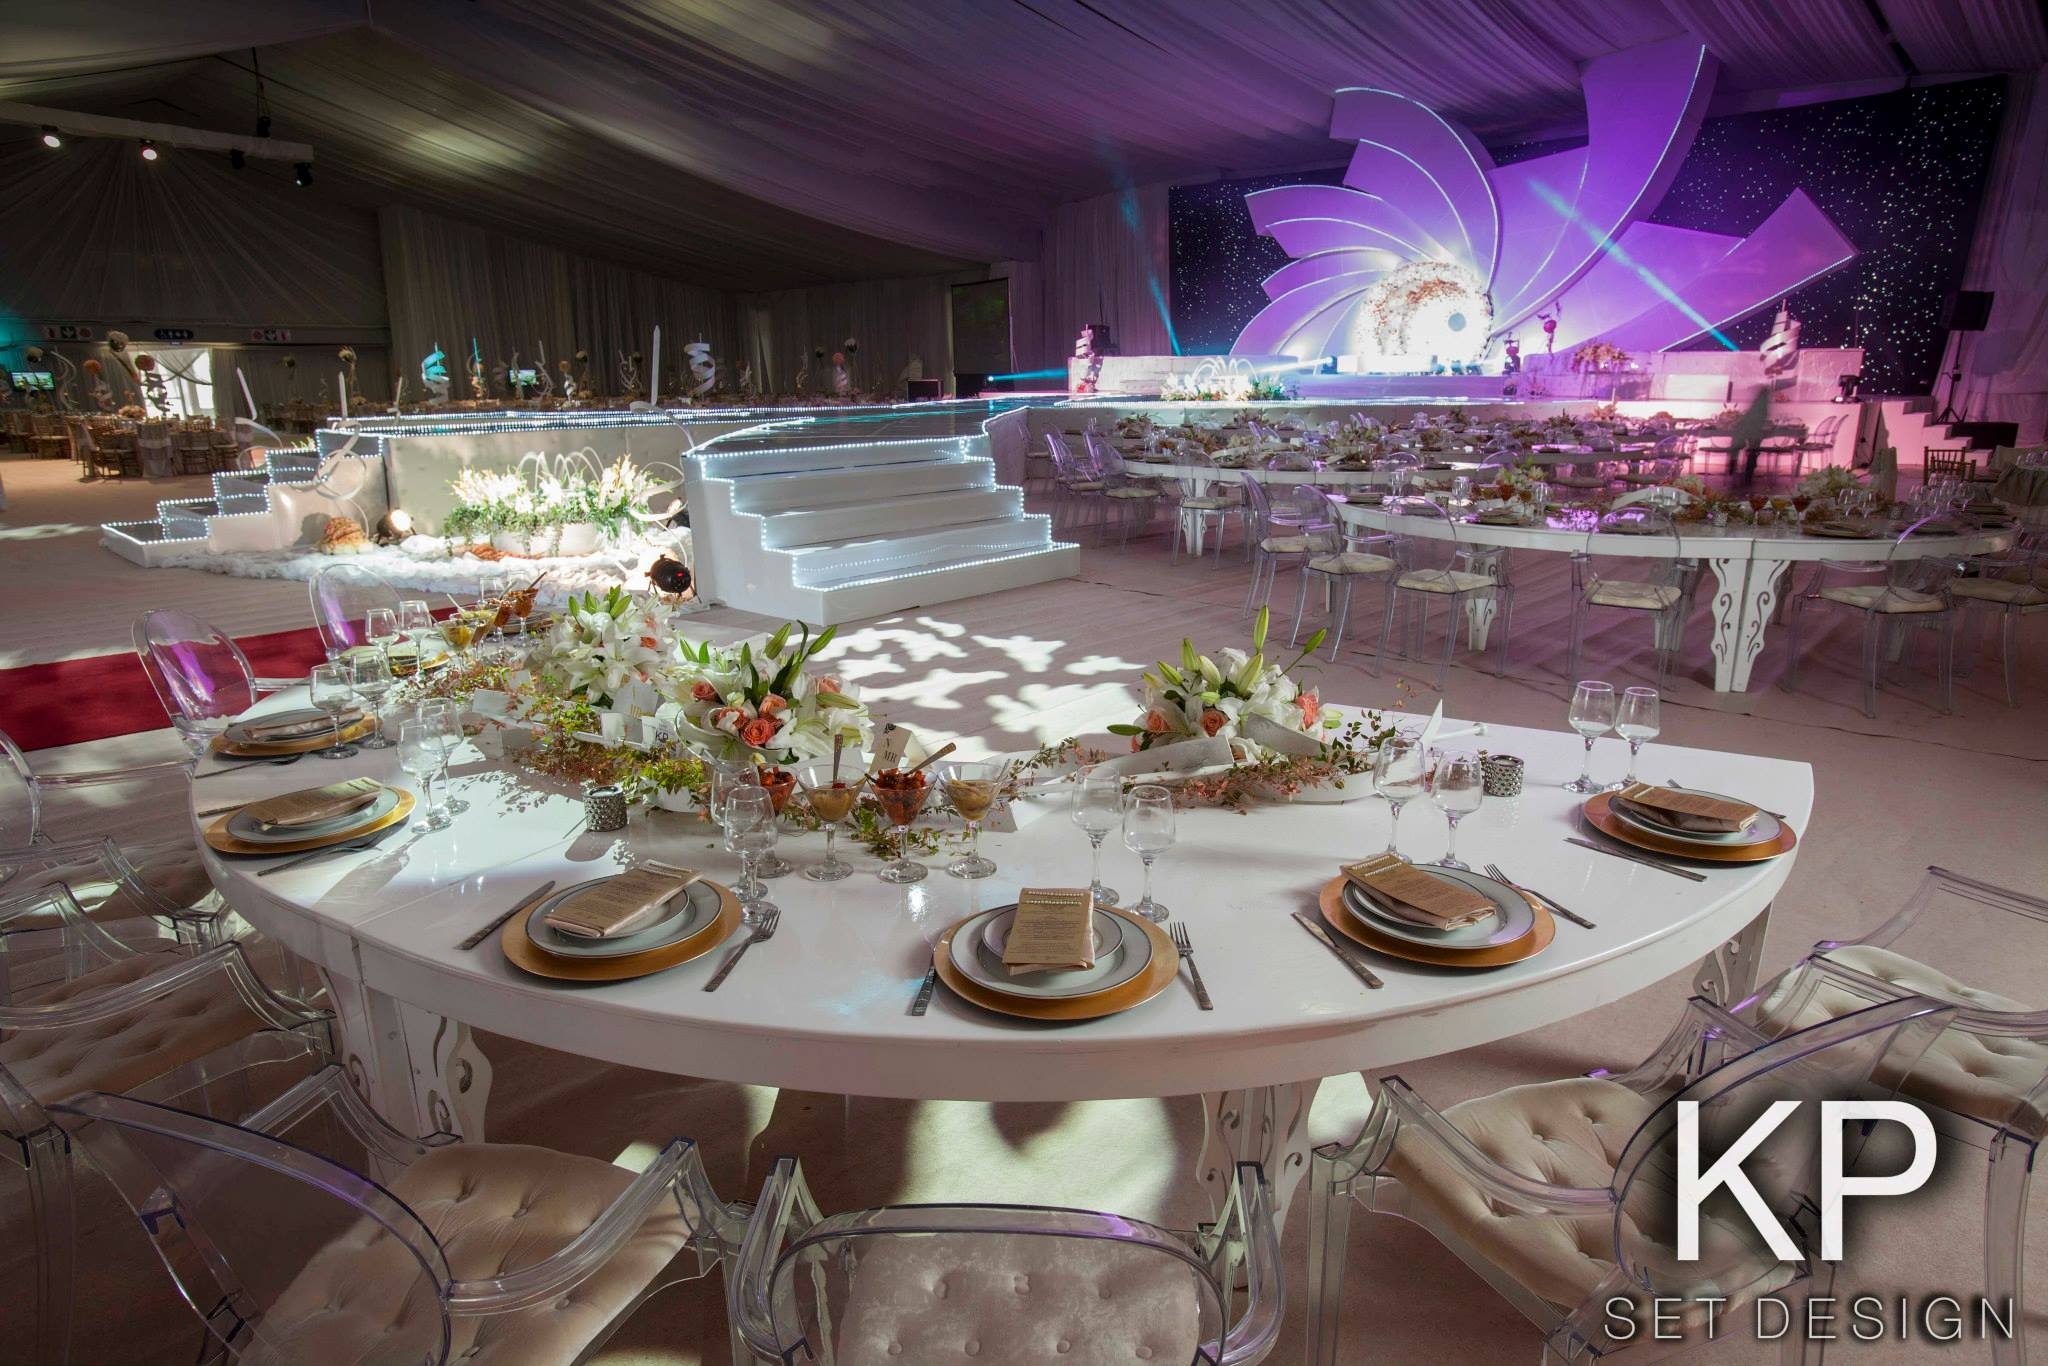 muslim wedding decor company durban koogan pillay wedding decor durban